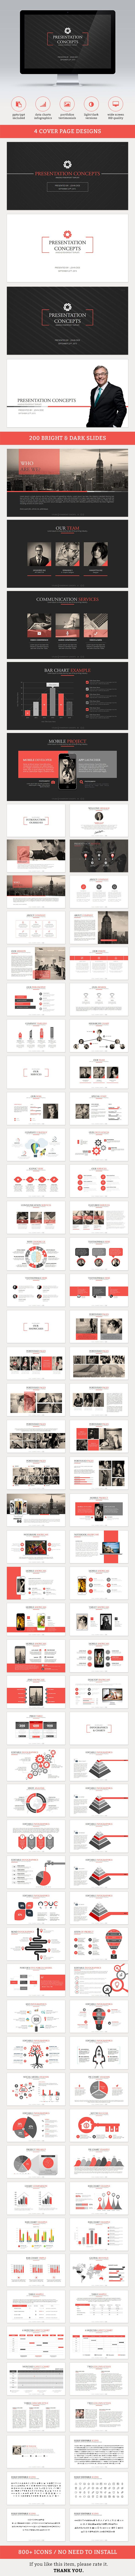 Axis PowerPoint Template is suitable for any Business Presentations. Available sale on Graphicriver.net. #AxisPowerPoint #1studio #GraphicRiver #PowerPoint #EnvatoMarket